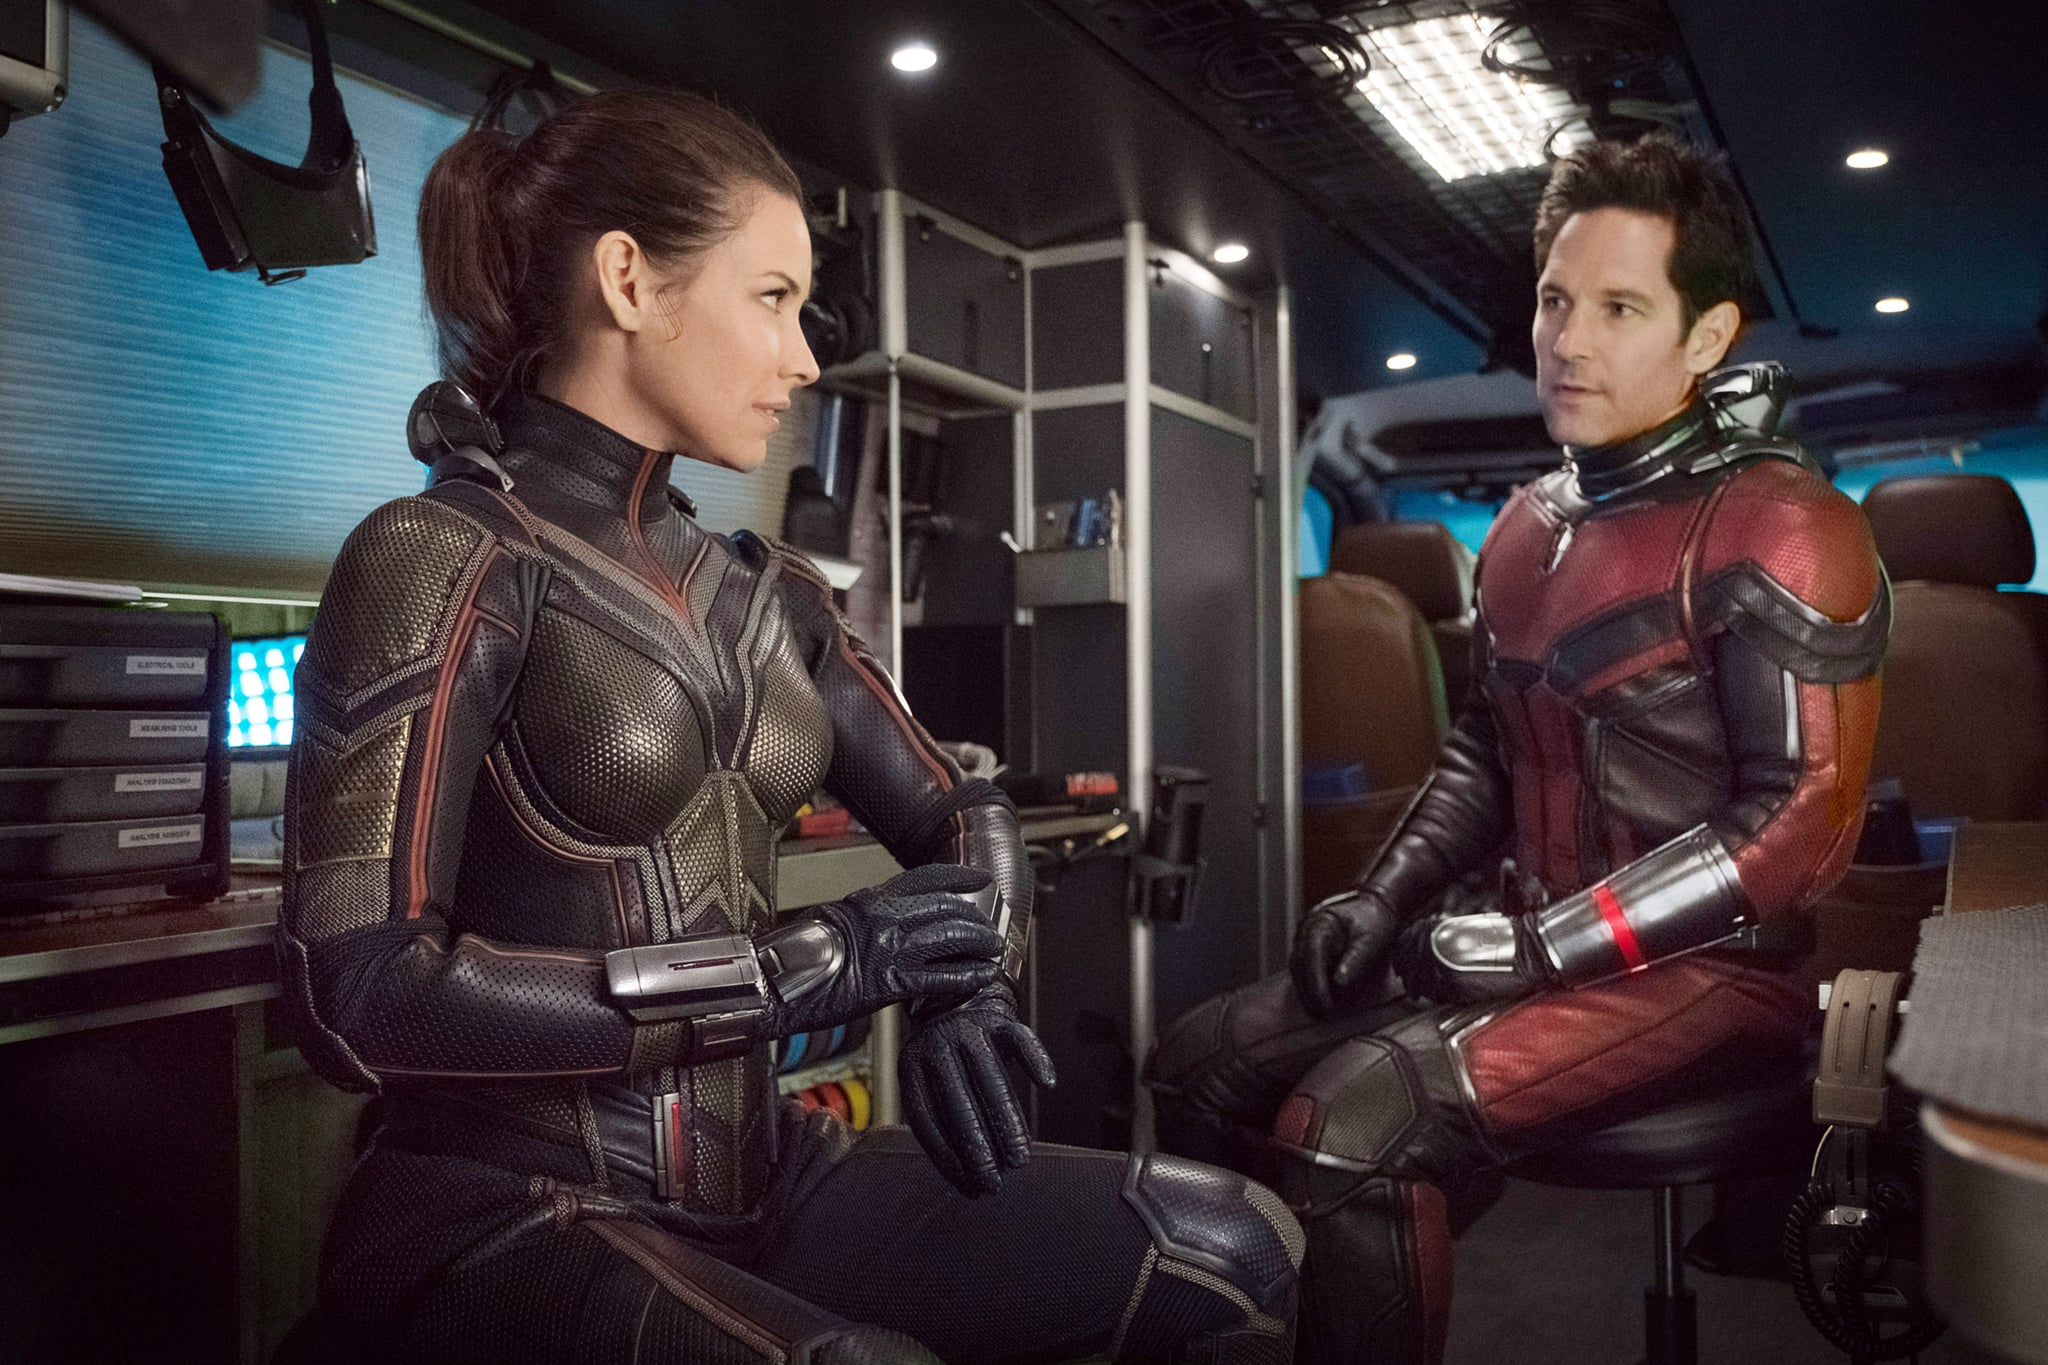 ANT-MAN AND THE WASP, from left, Evangeline Lilly as The Wasp, Paul Rudd as Ant-Man, 2018. ph: Ben Rothstein. Marvel/Walt Disney Studios Motion Pictures/courtesy Everett Collection